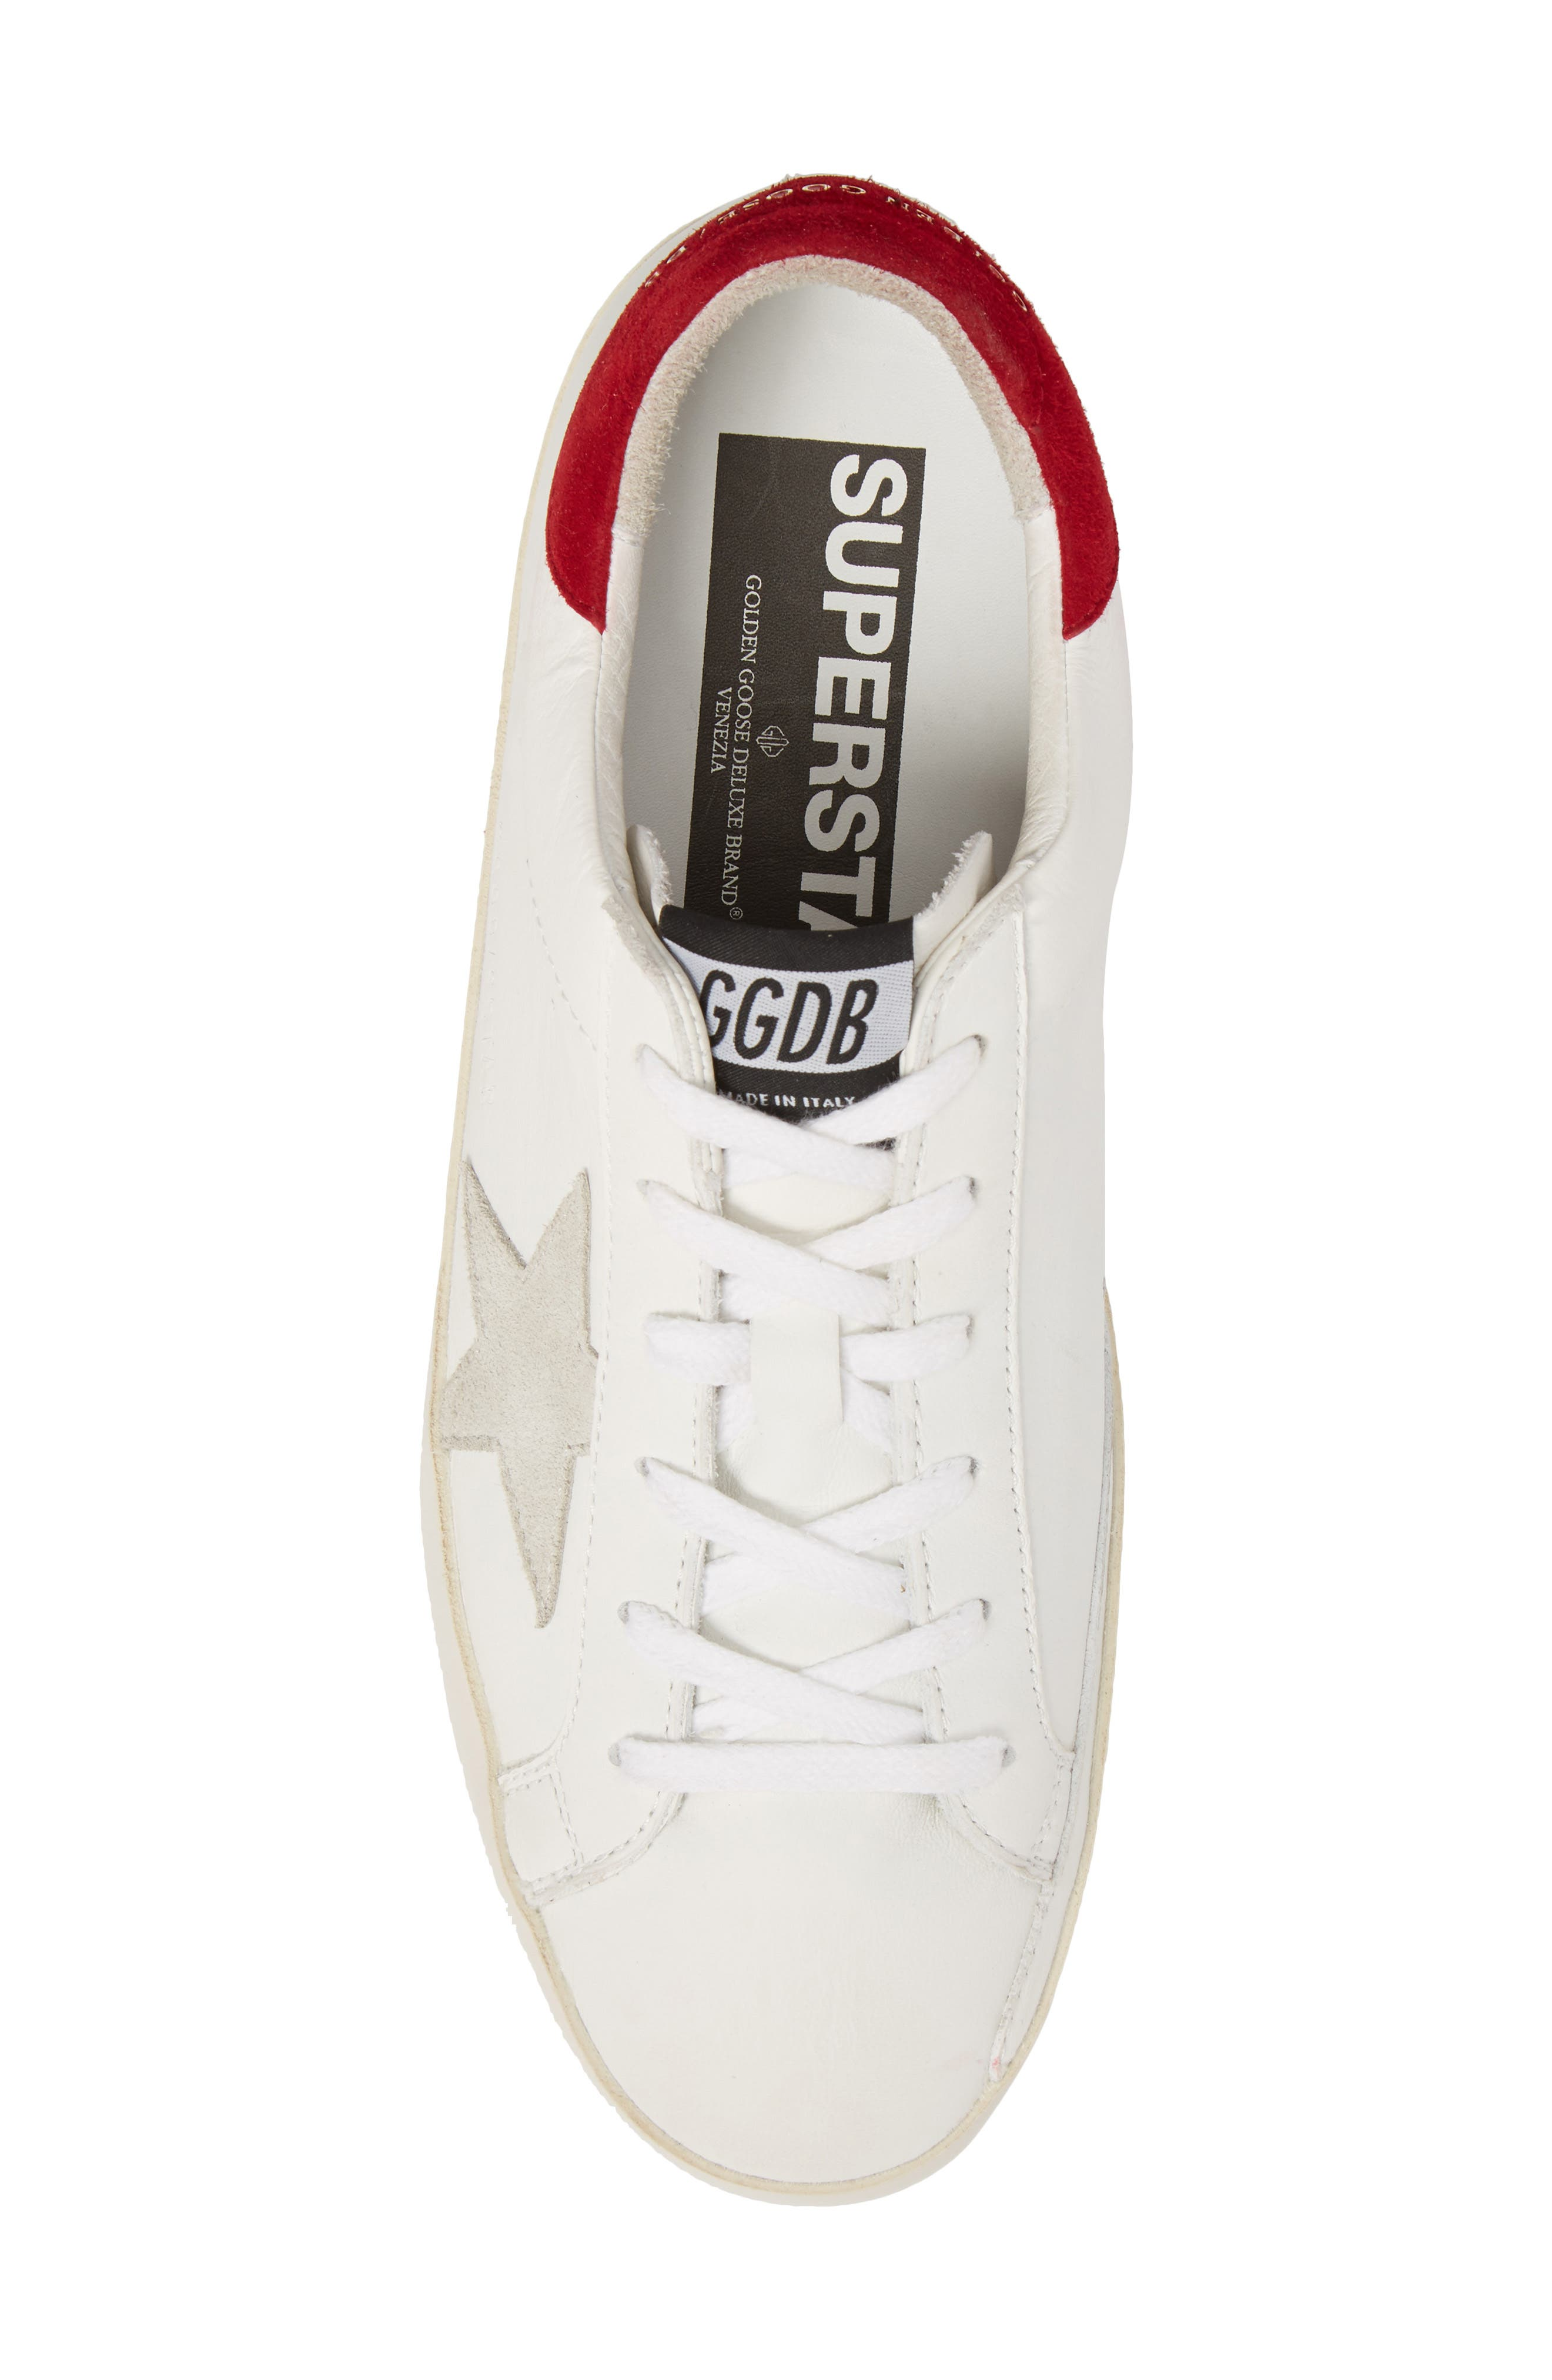 Superstar Low Top Sneaker,                             Alternate thumbnail 5, color,                             White/ Bordeaux